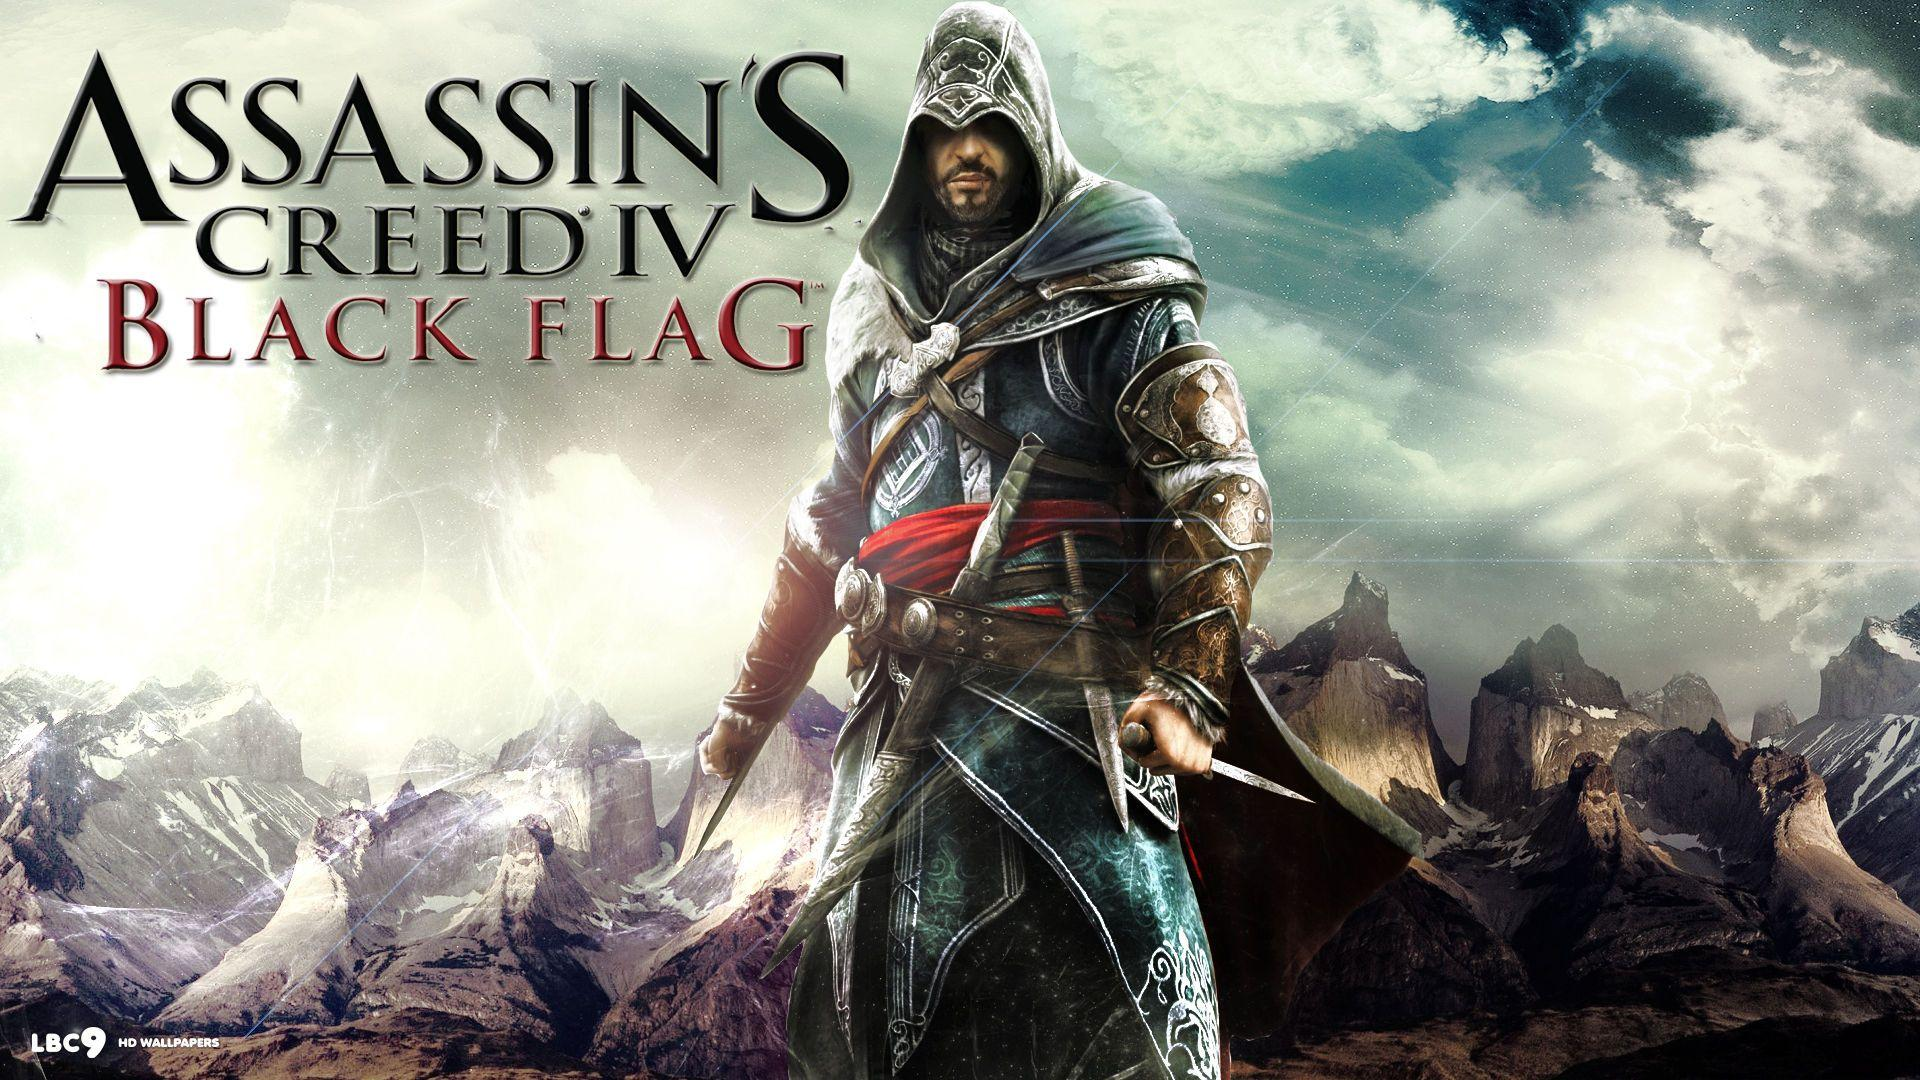 Assassins Creed Black Flag Wallpapers 1920x1080 ...